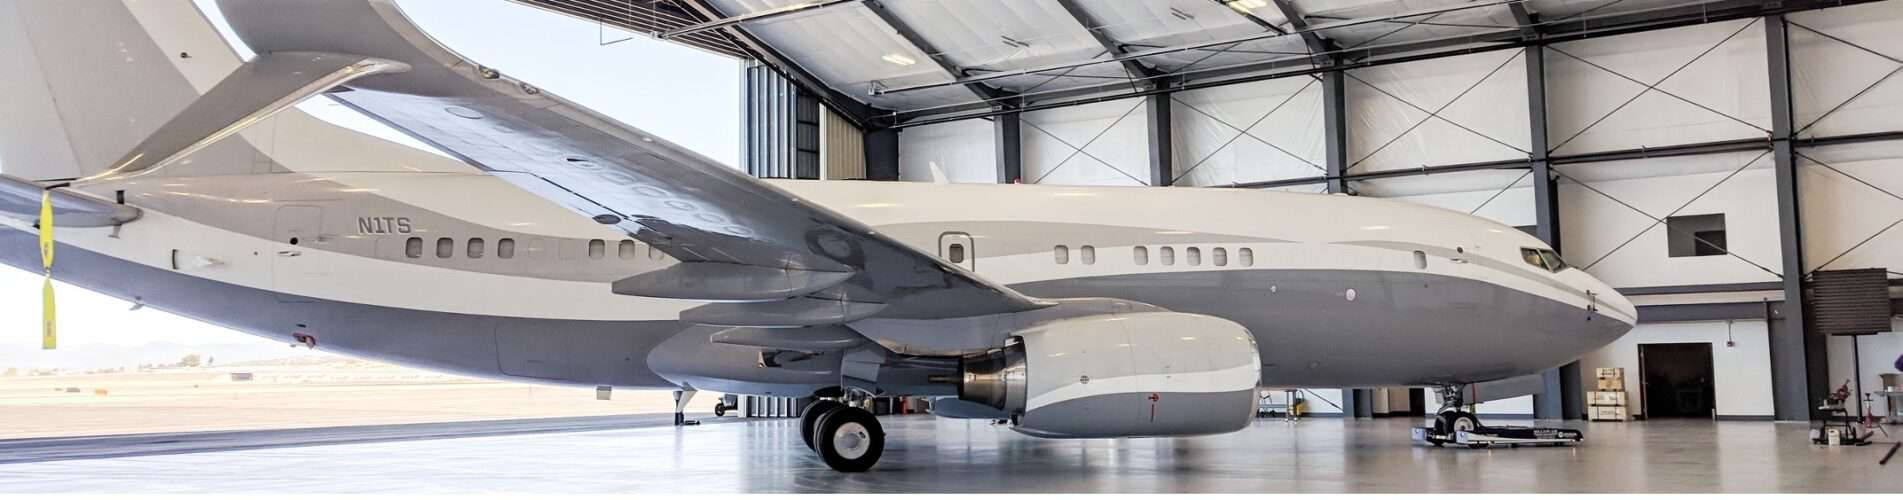 Aircraft Hangar with large airplane